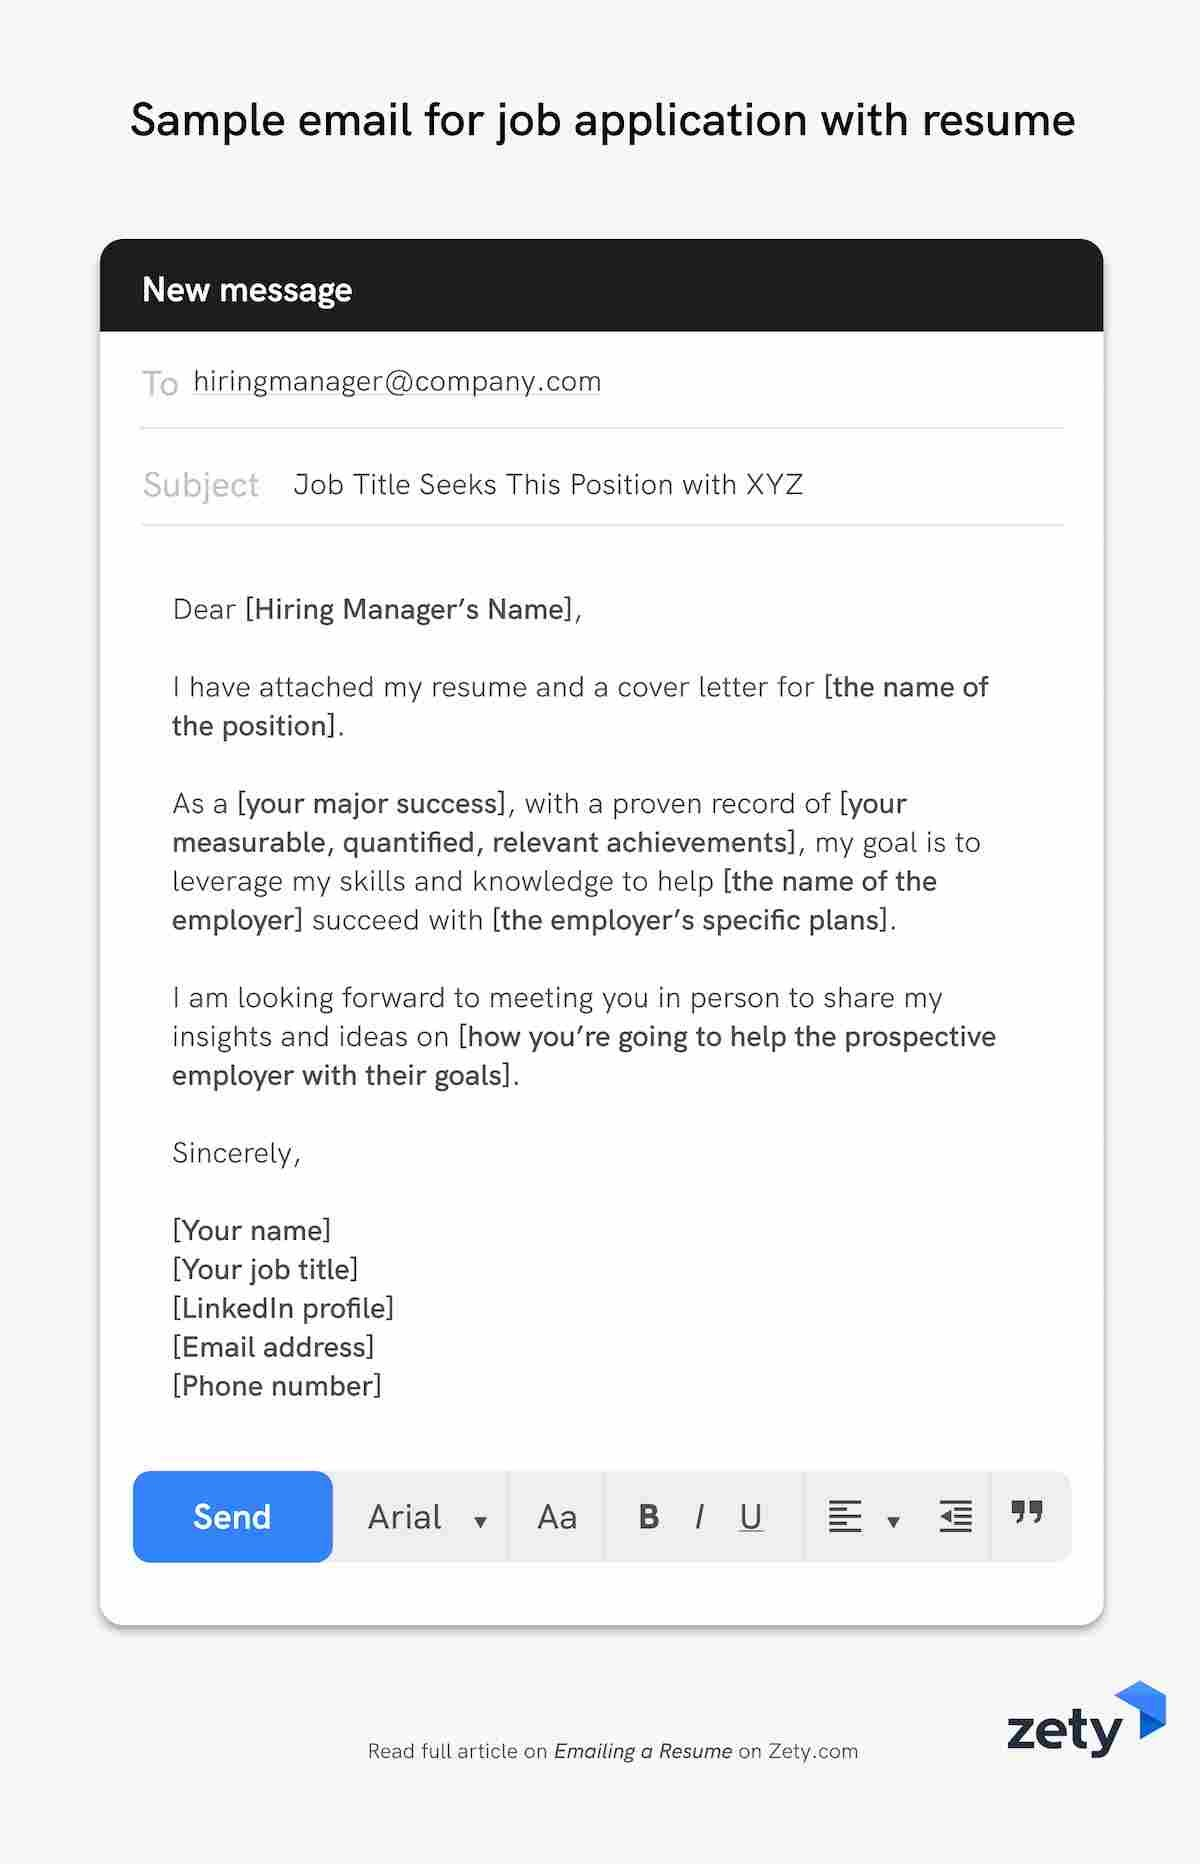 emailing resume job application email samples mail body for sending sample with medical Resume Mail Body For Sending Resume